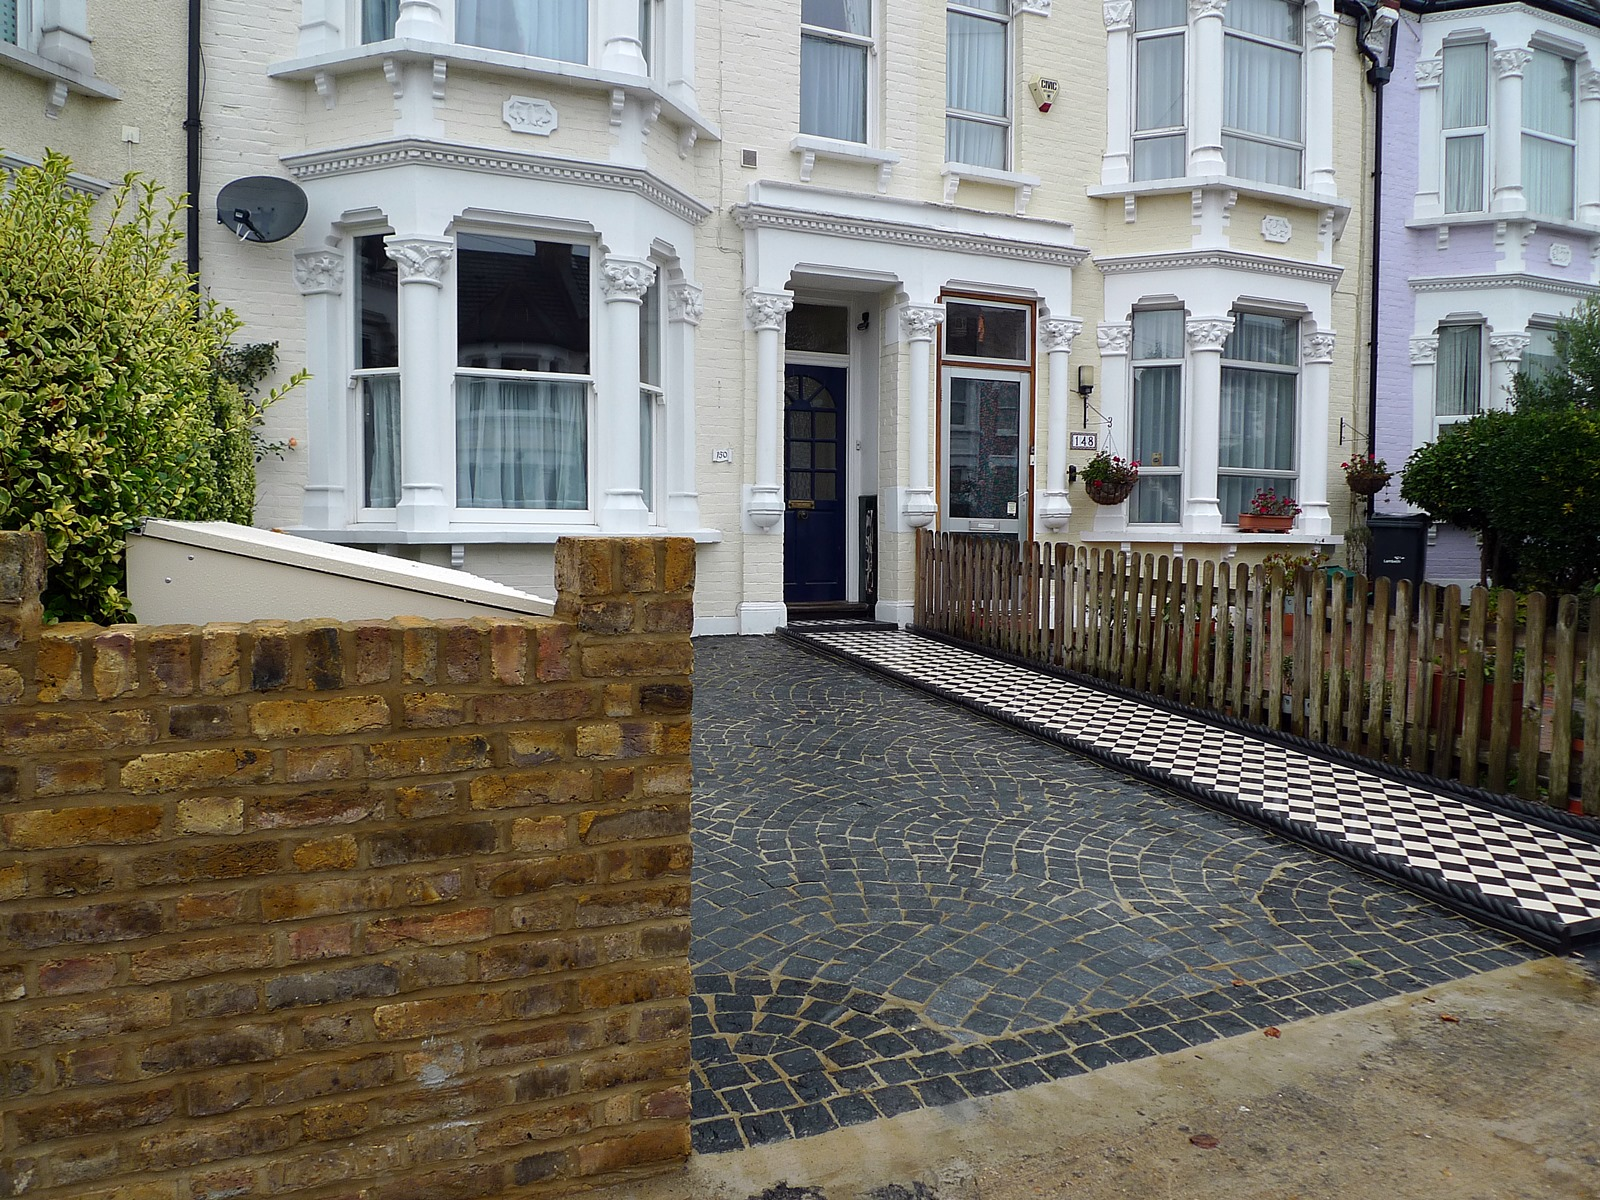 blaock paving driveway and mosaic tile path streatham london